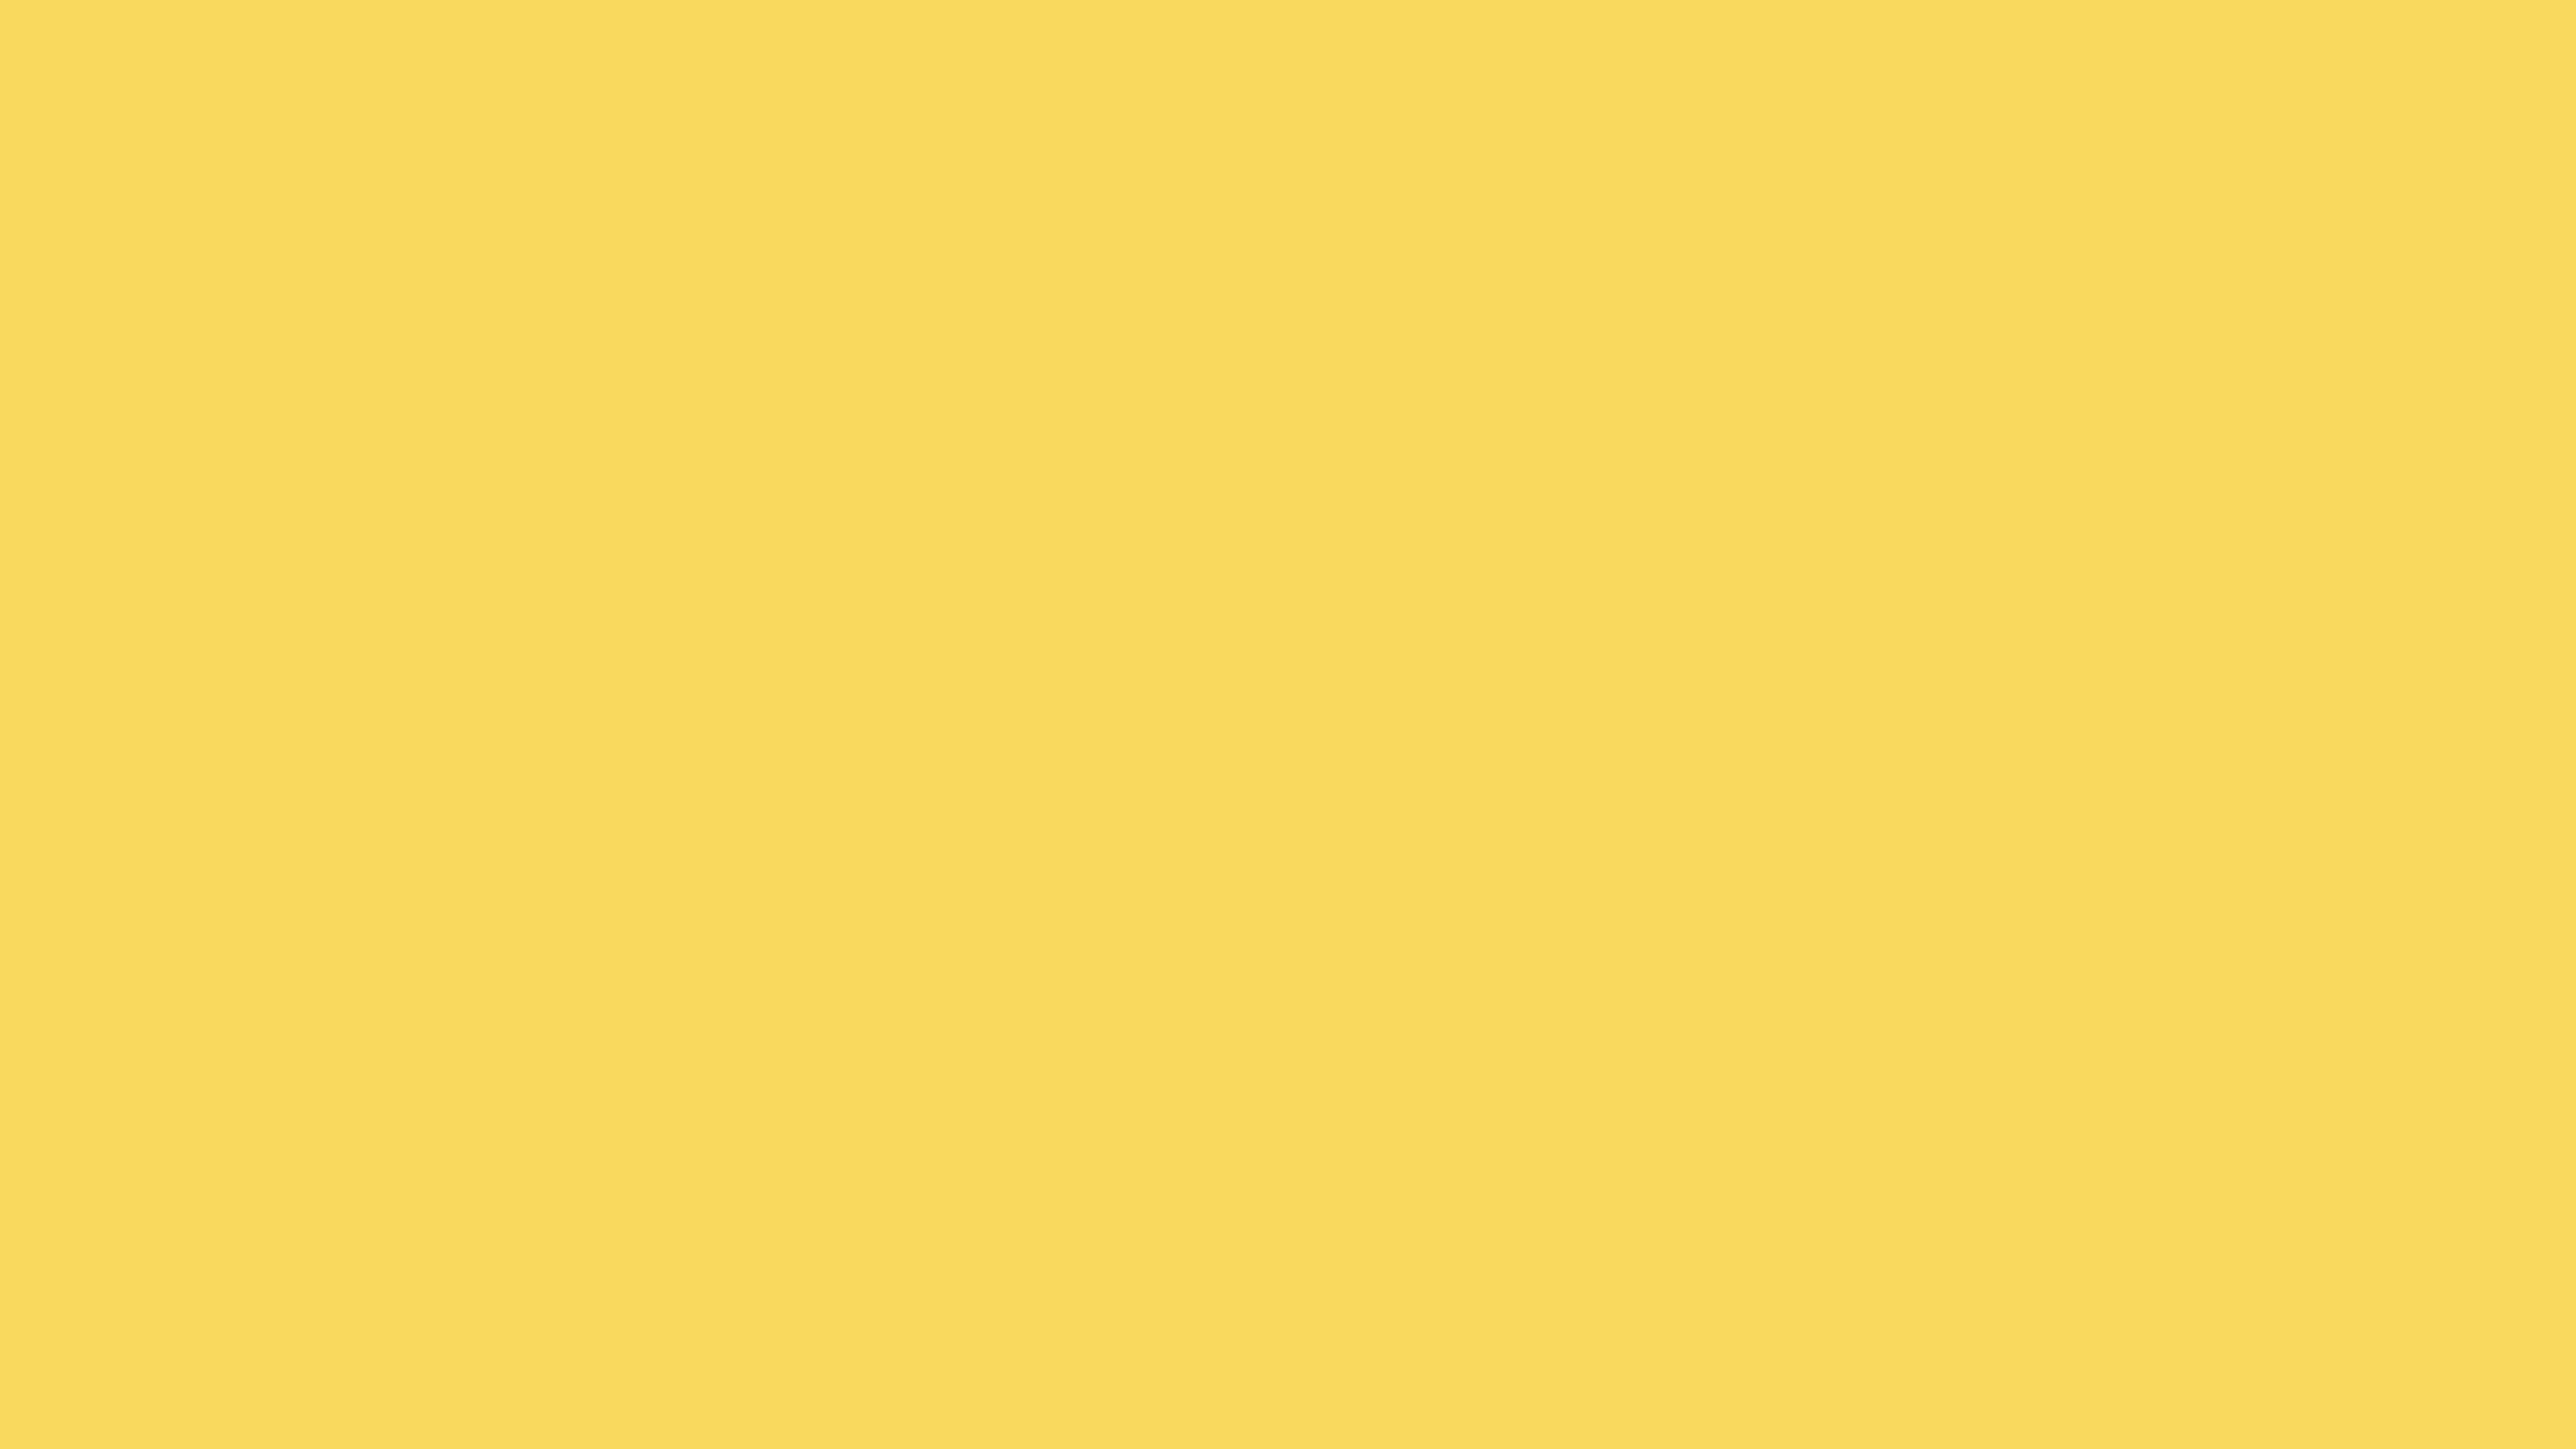 3840x2160 Royal Yellow Solid Color Background